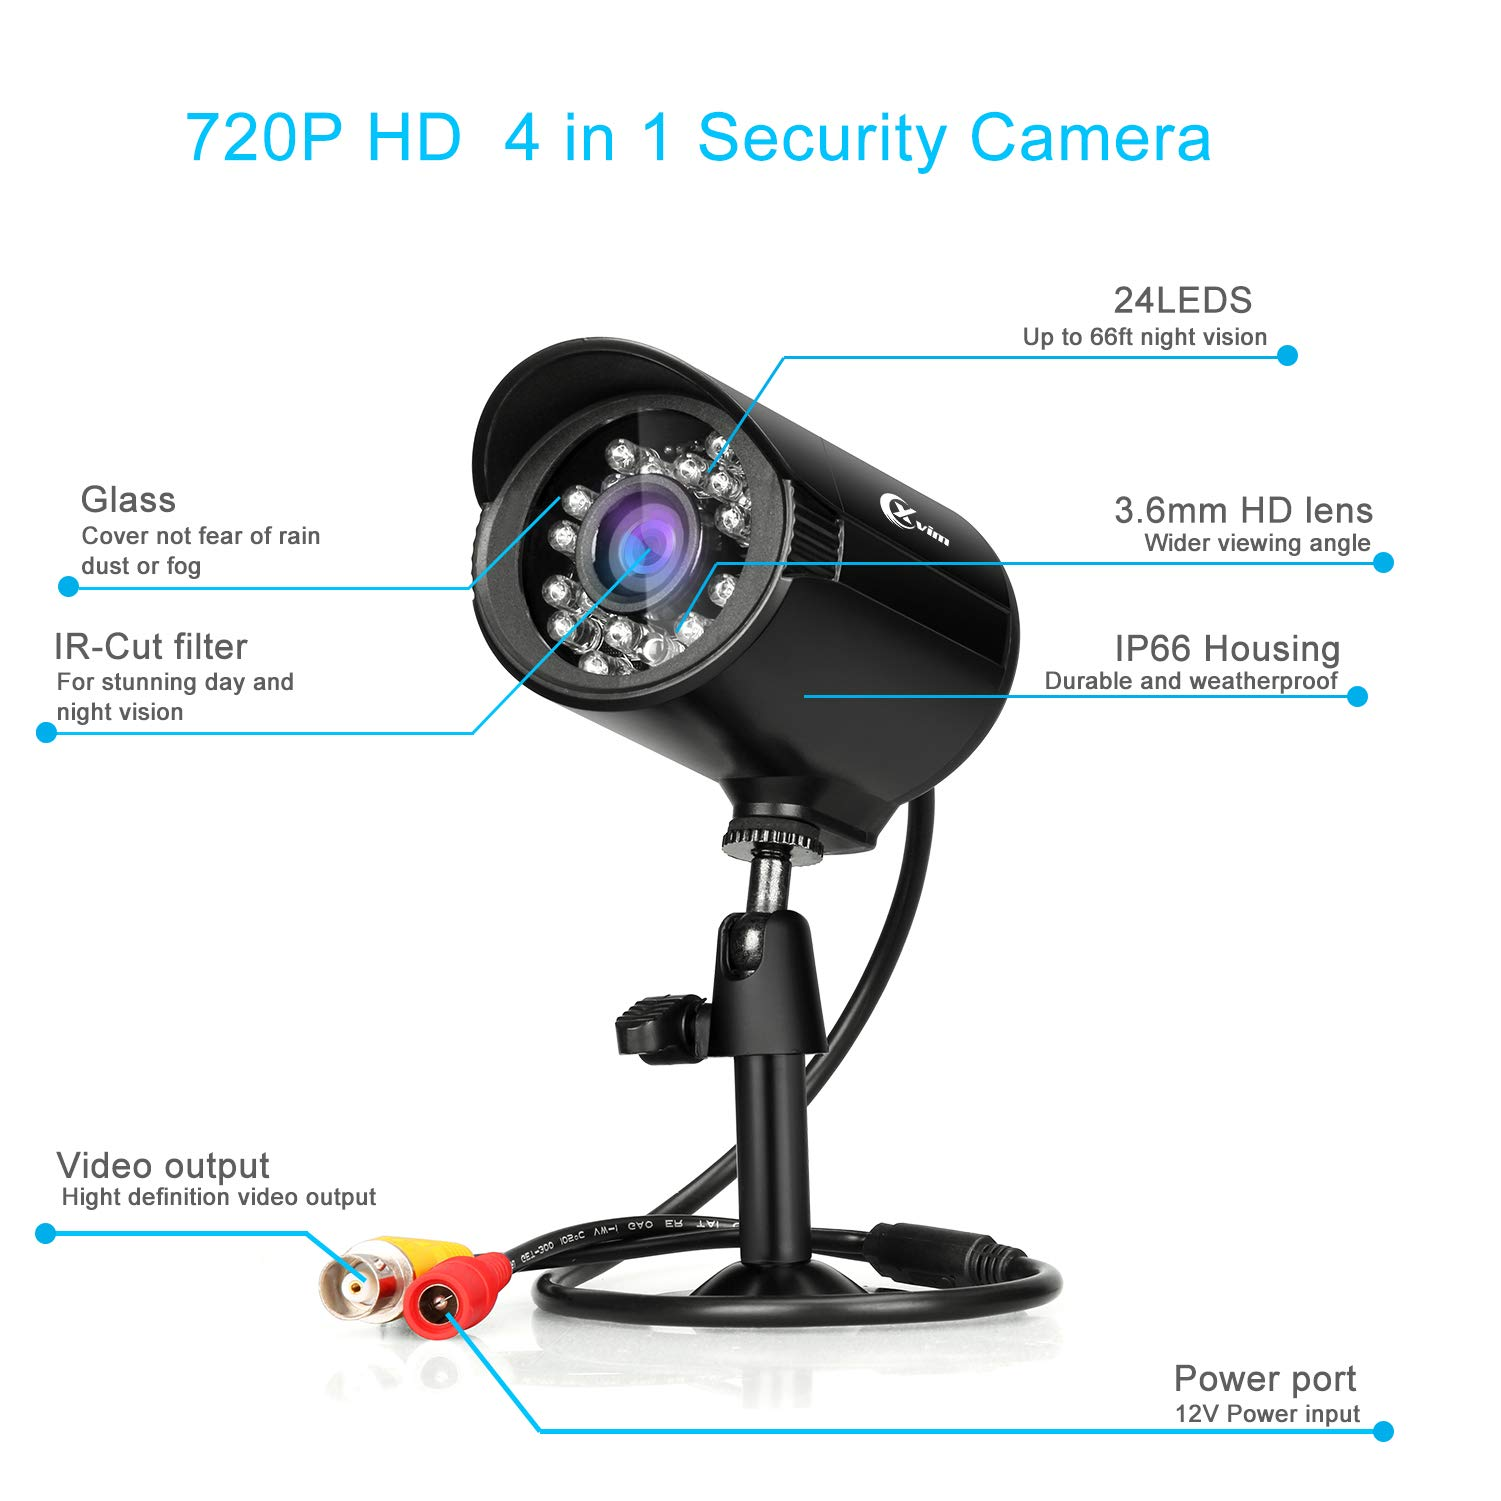 XVIM 8 Channel 720P Security Camera System Video DVR Recorder with 4X HD 720P Indoor Outdoor Weatherproof CCTV Cameras 1TB Hard Drive,Motion Alert, Easy Remote Access on Phone by X-VIM (Image #5)